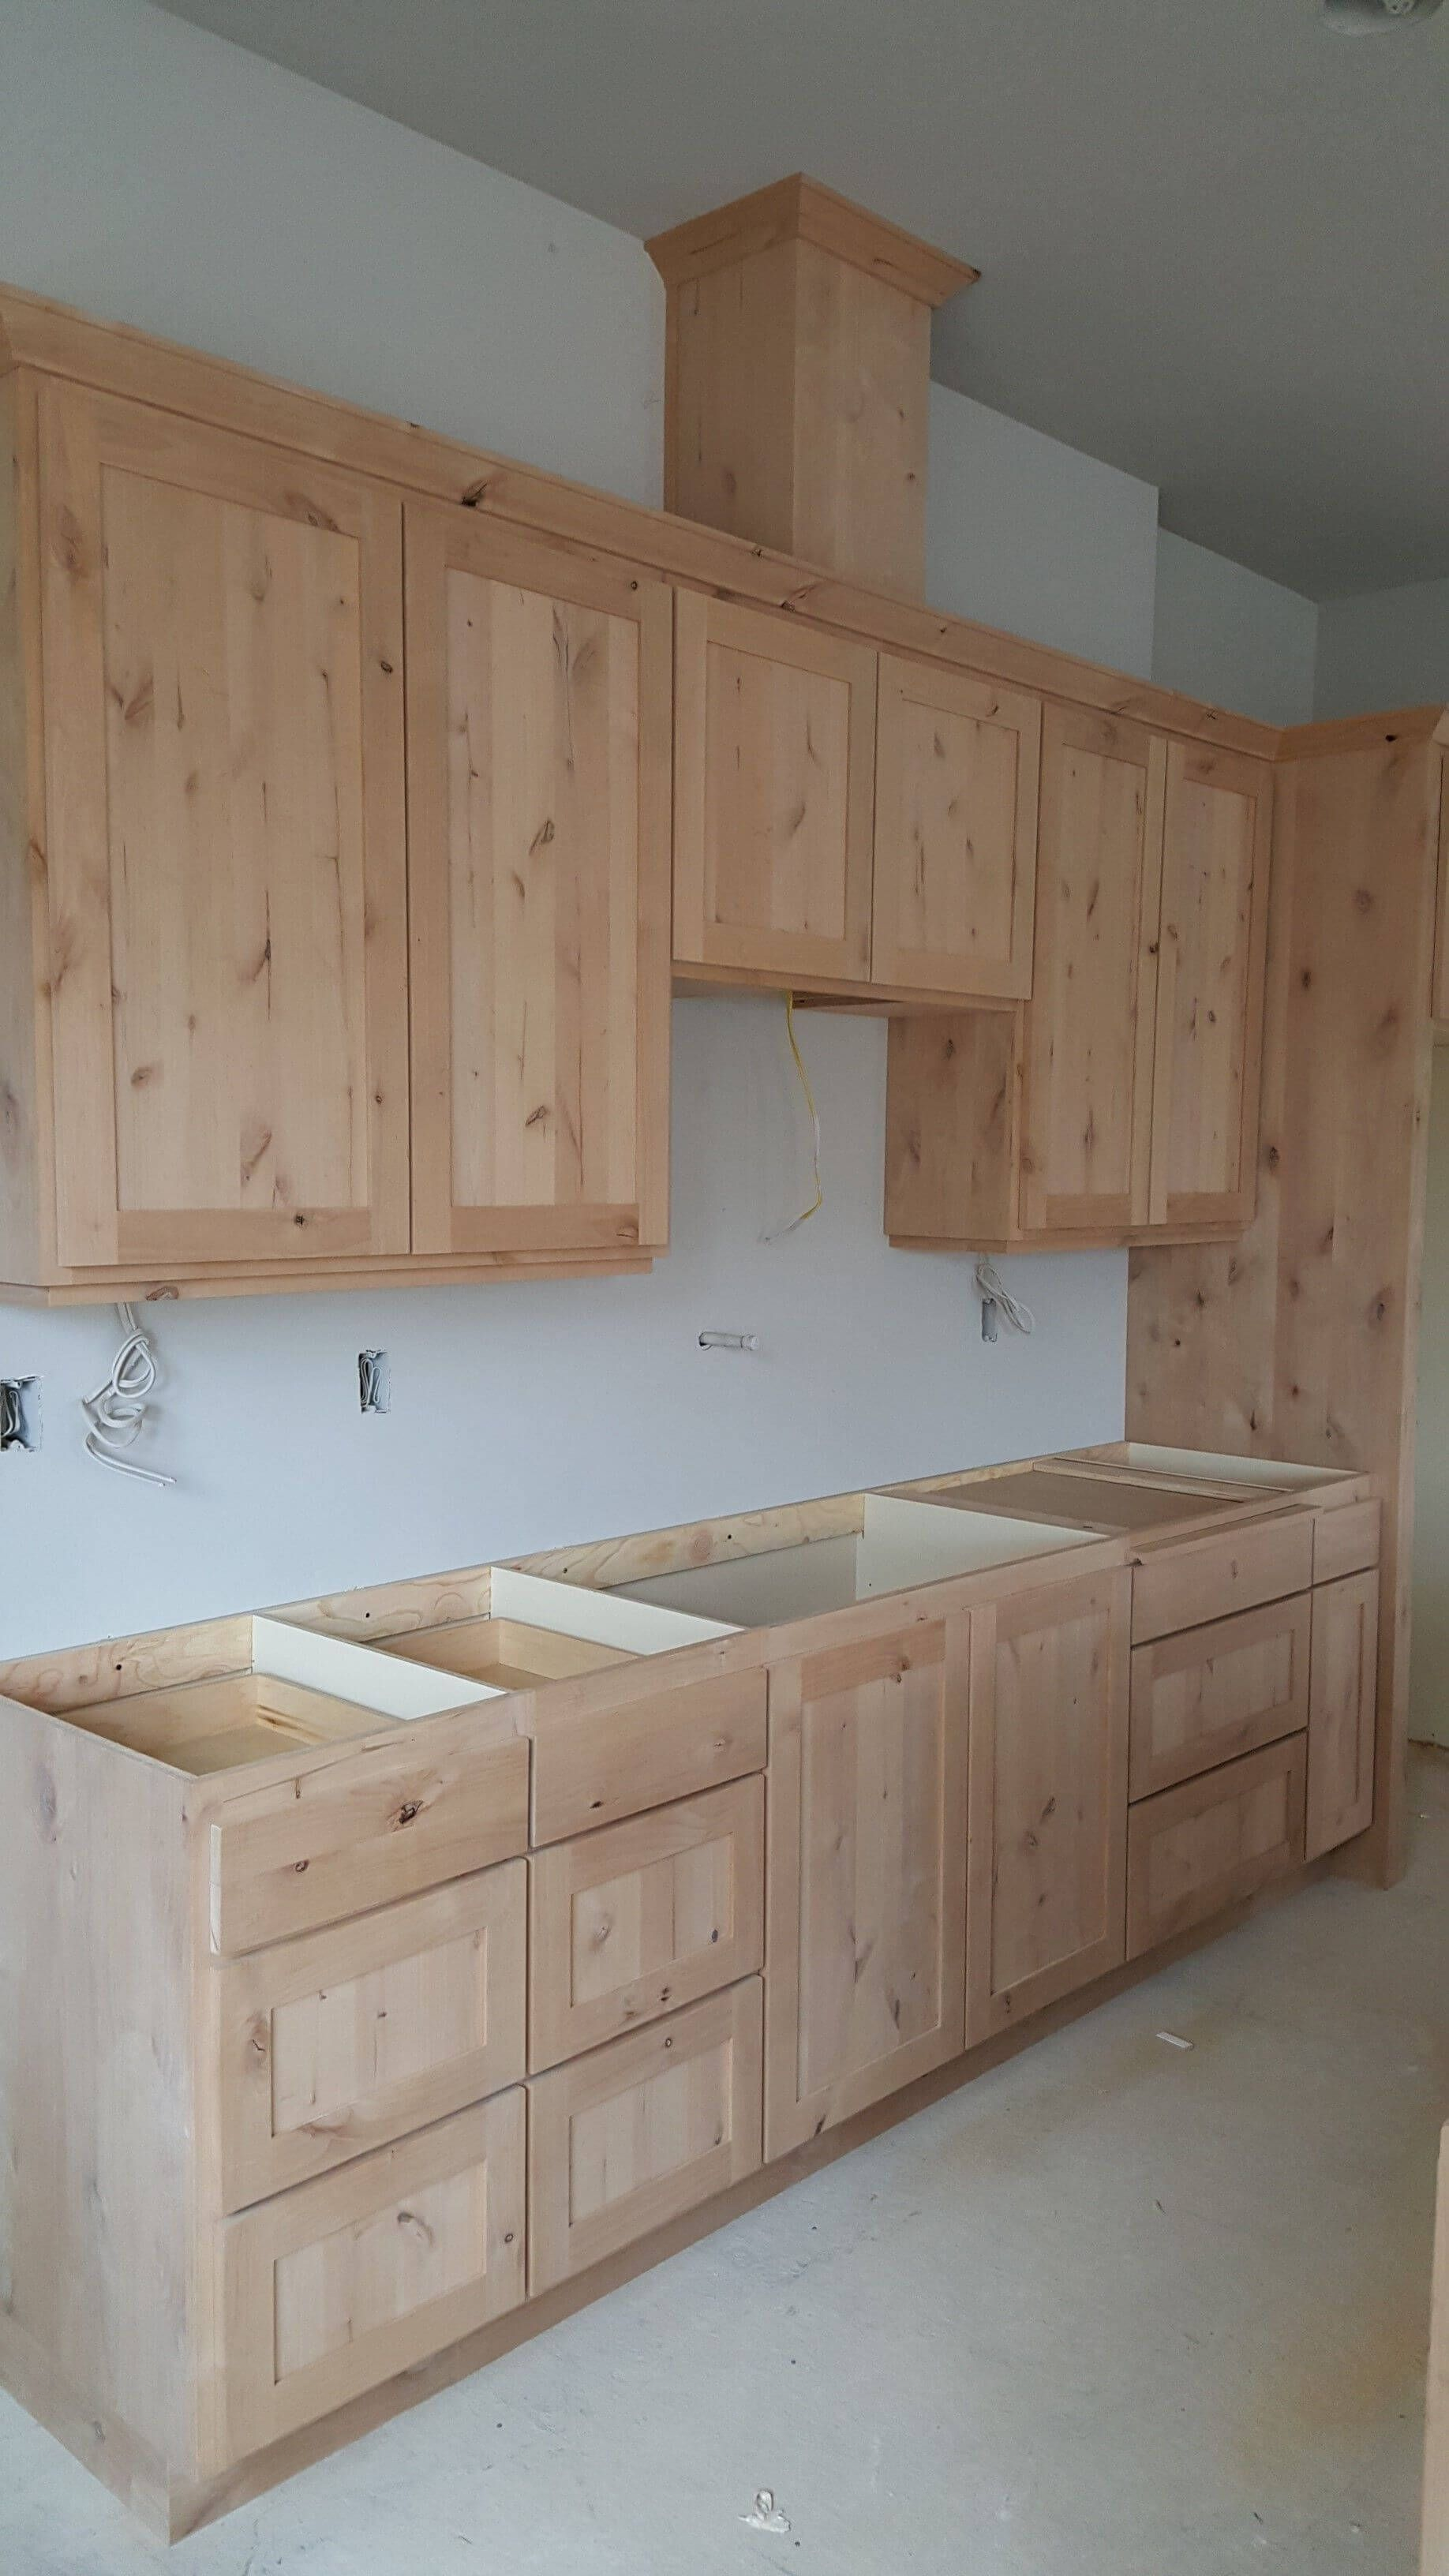 Rustic Kitchen Cabinets Home Depot Build On The Simple Idea That Everything In The Home Has Kitchen Cabinet Styles Kitchen Cabinet Plans Cheap Kitchen Cabinets